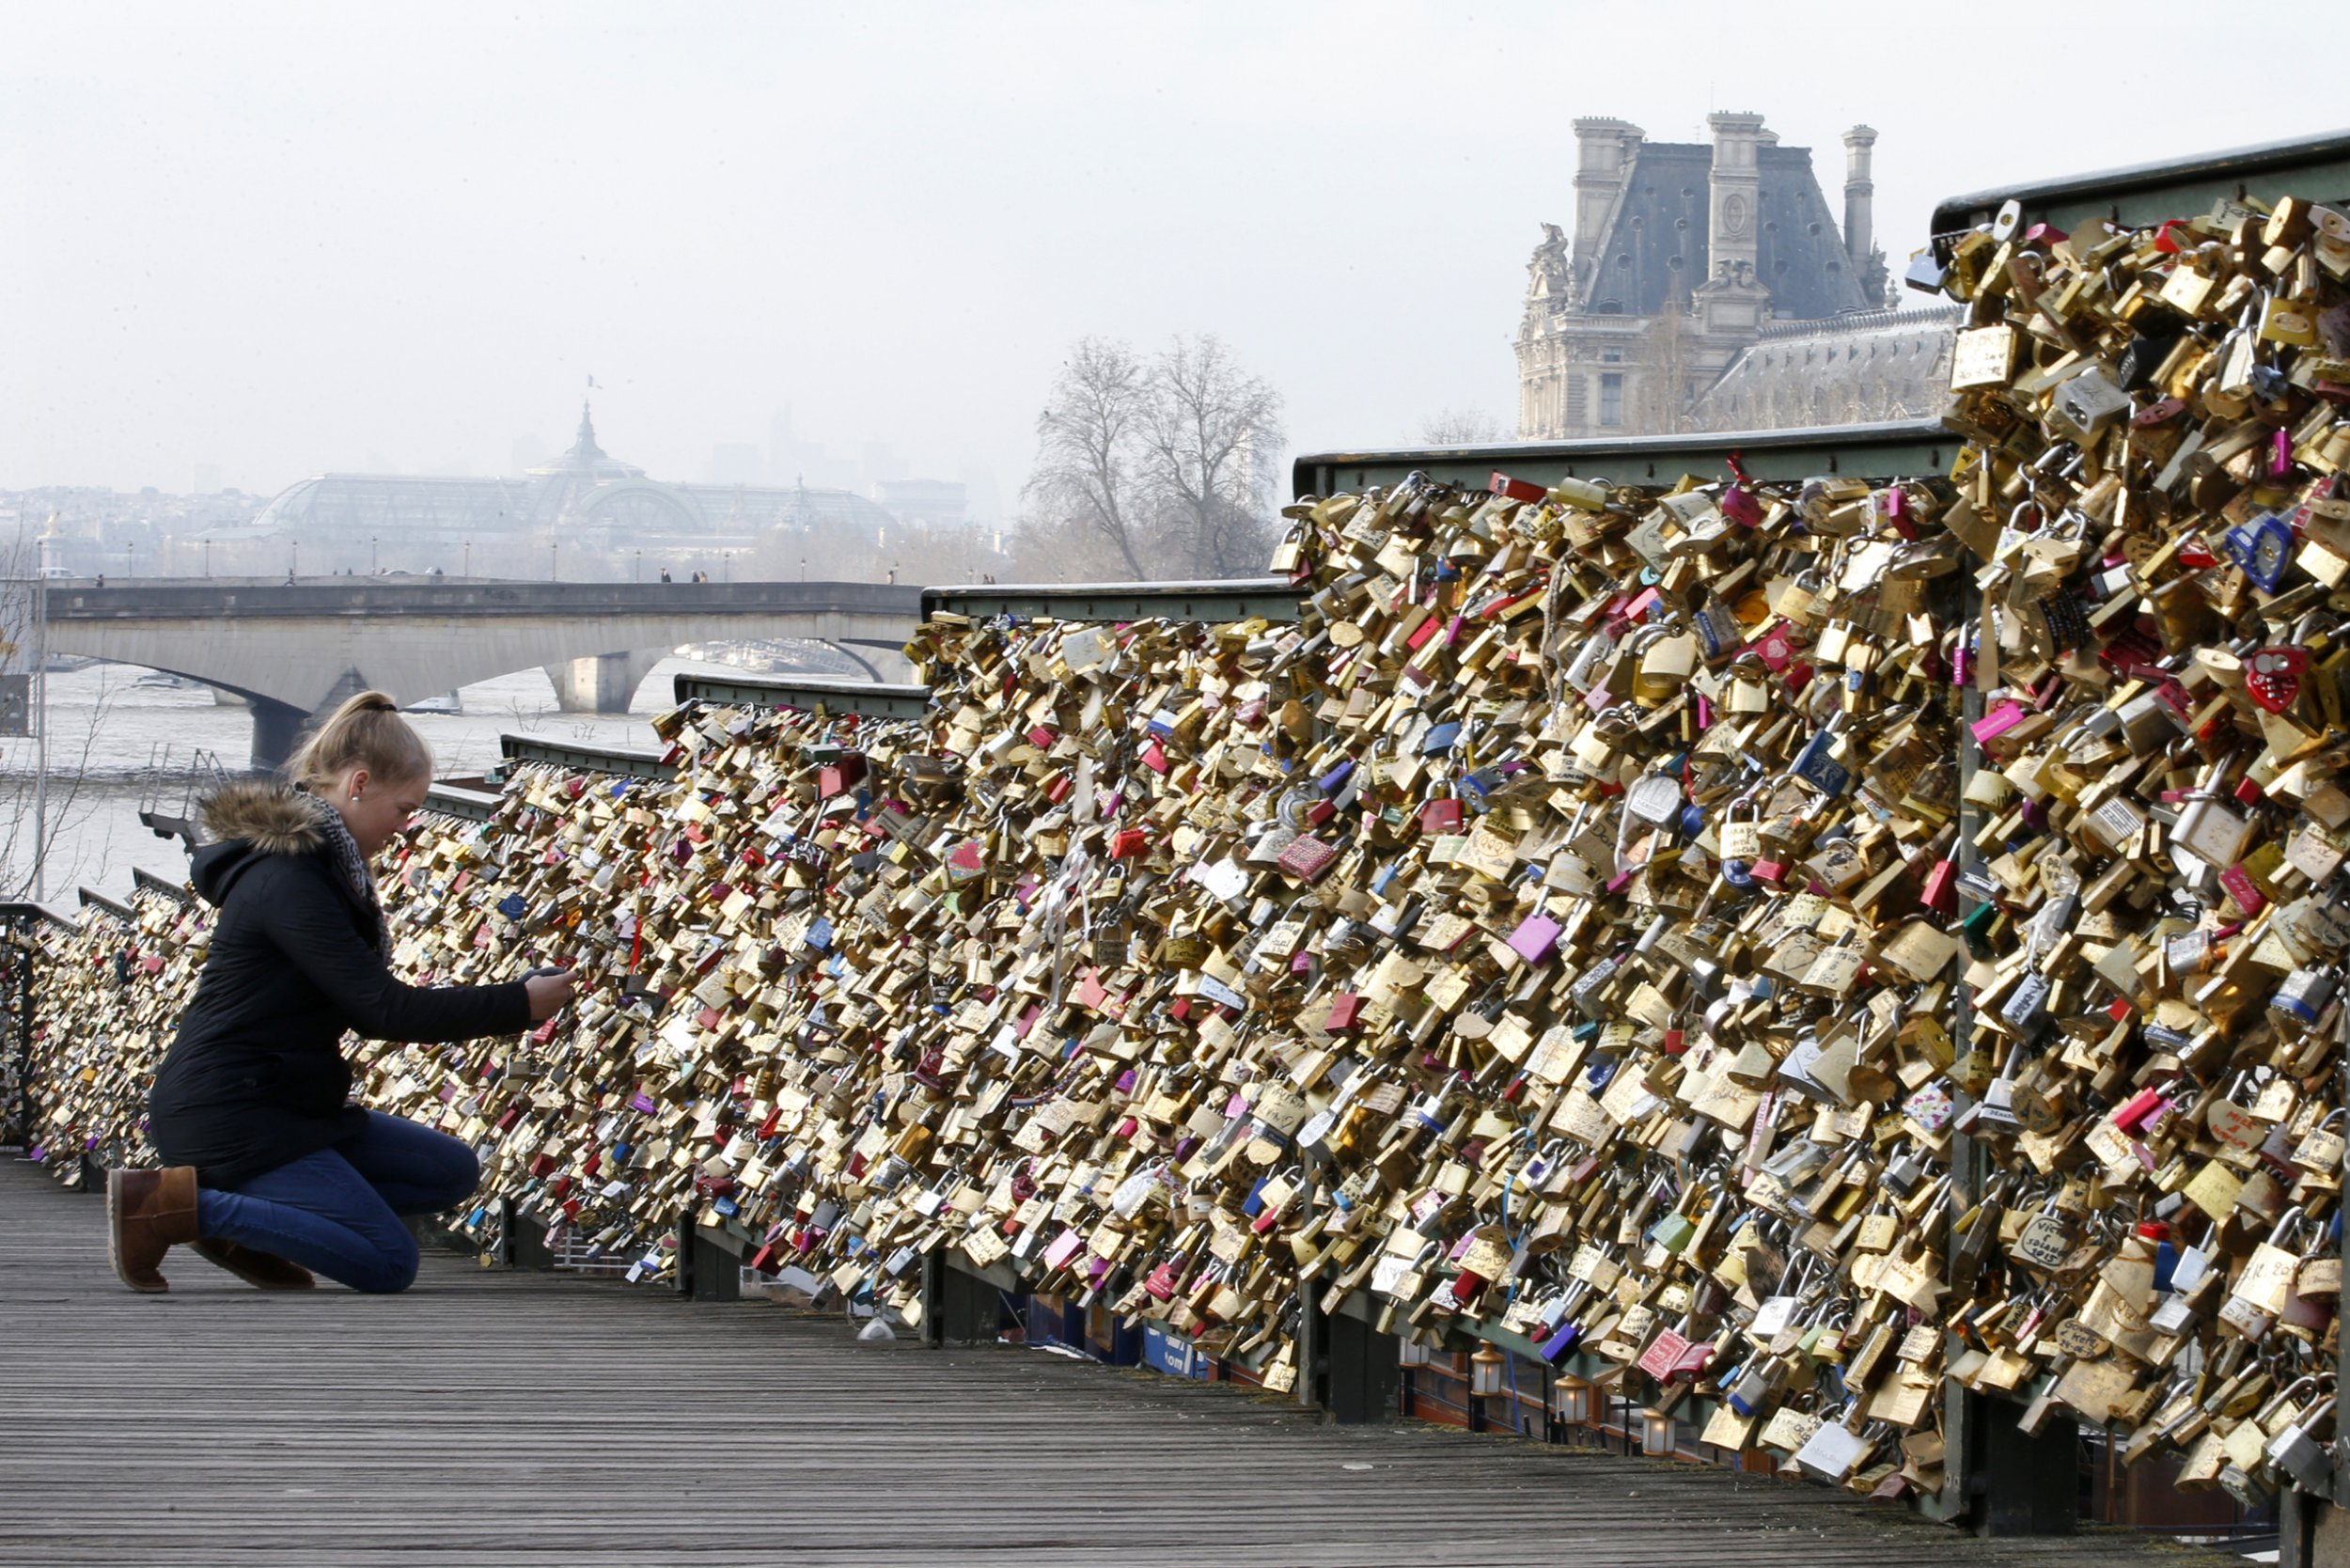 C est fini l amour paris to cut love locks for Locks on the bridge in paris